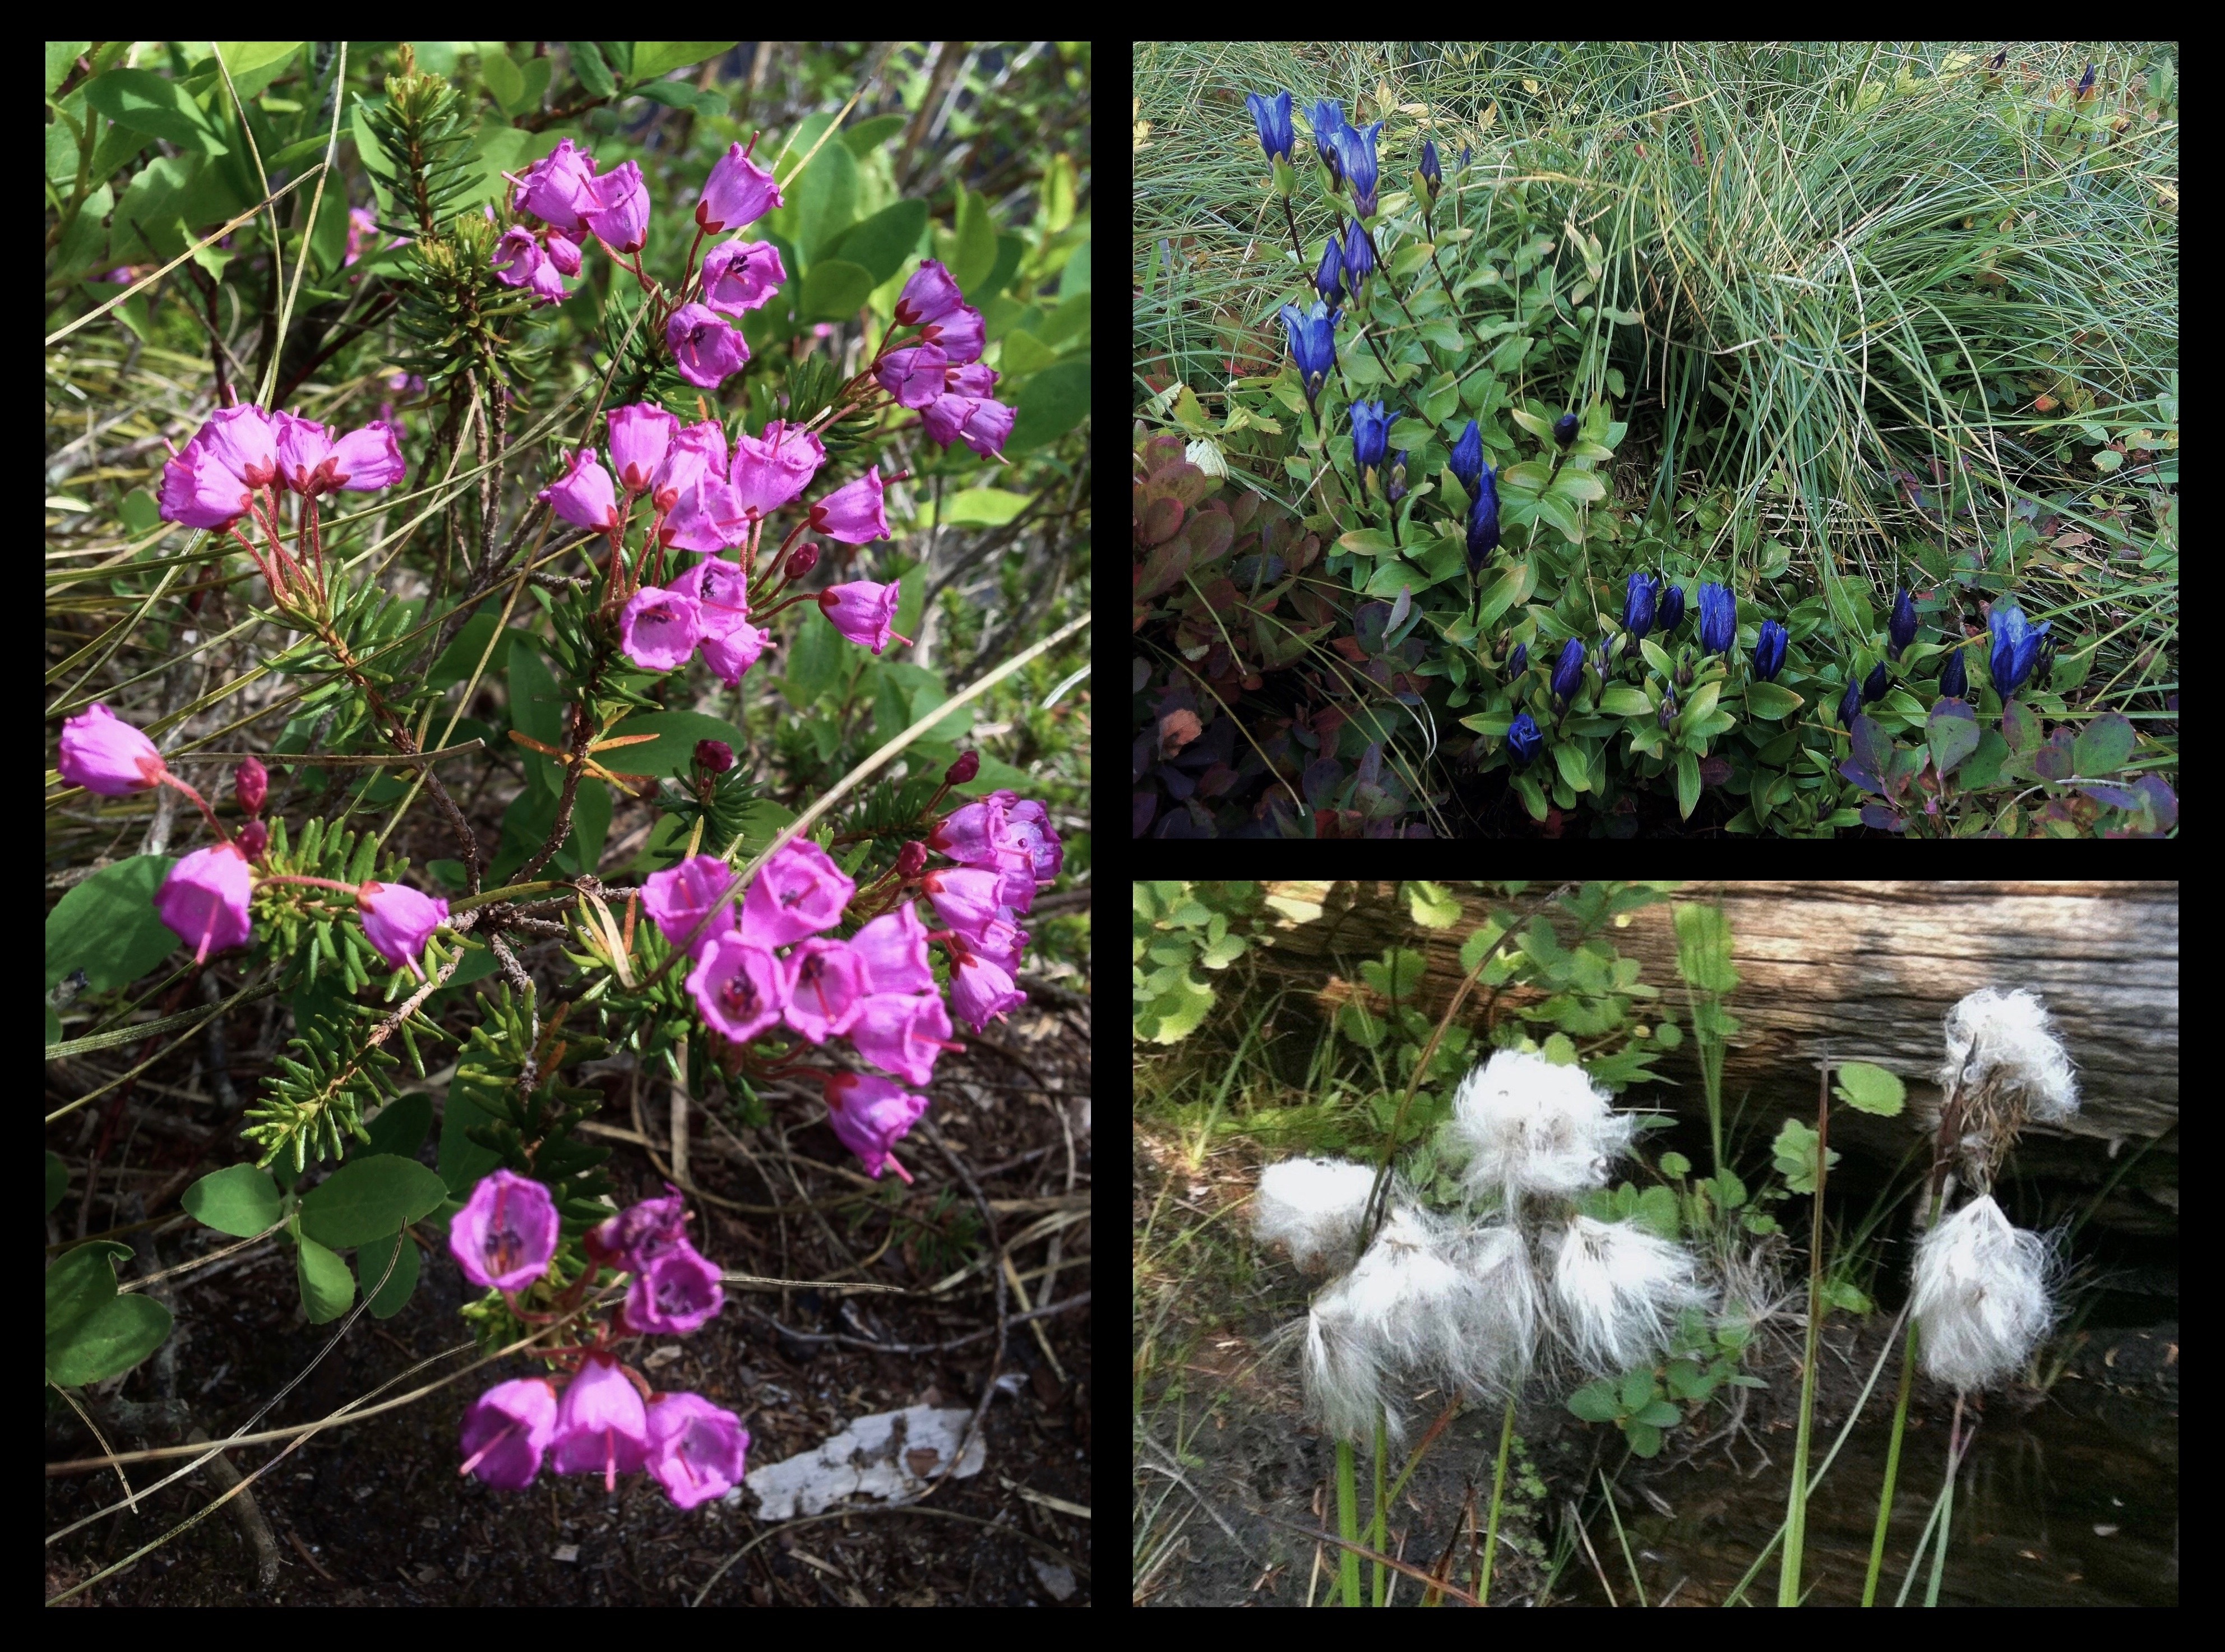 In early summer, pink mountain-heath (Phyllodoce empetriformis) (left) brightens the boggy uplands around the lakes. Later in the summer and autumn, mountain bog gentians (Gentiana calycosa) (upper right) bloom in jewel-like drifts and cotton grass (Eriophorum sp.) (lower right) hoists tiny, threadbare white flags throughout. Ira Spring Trail, July 04, 2013 and September 16, 2012.